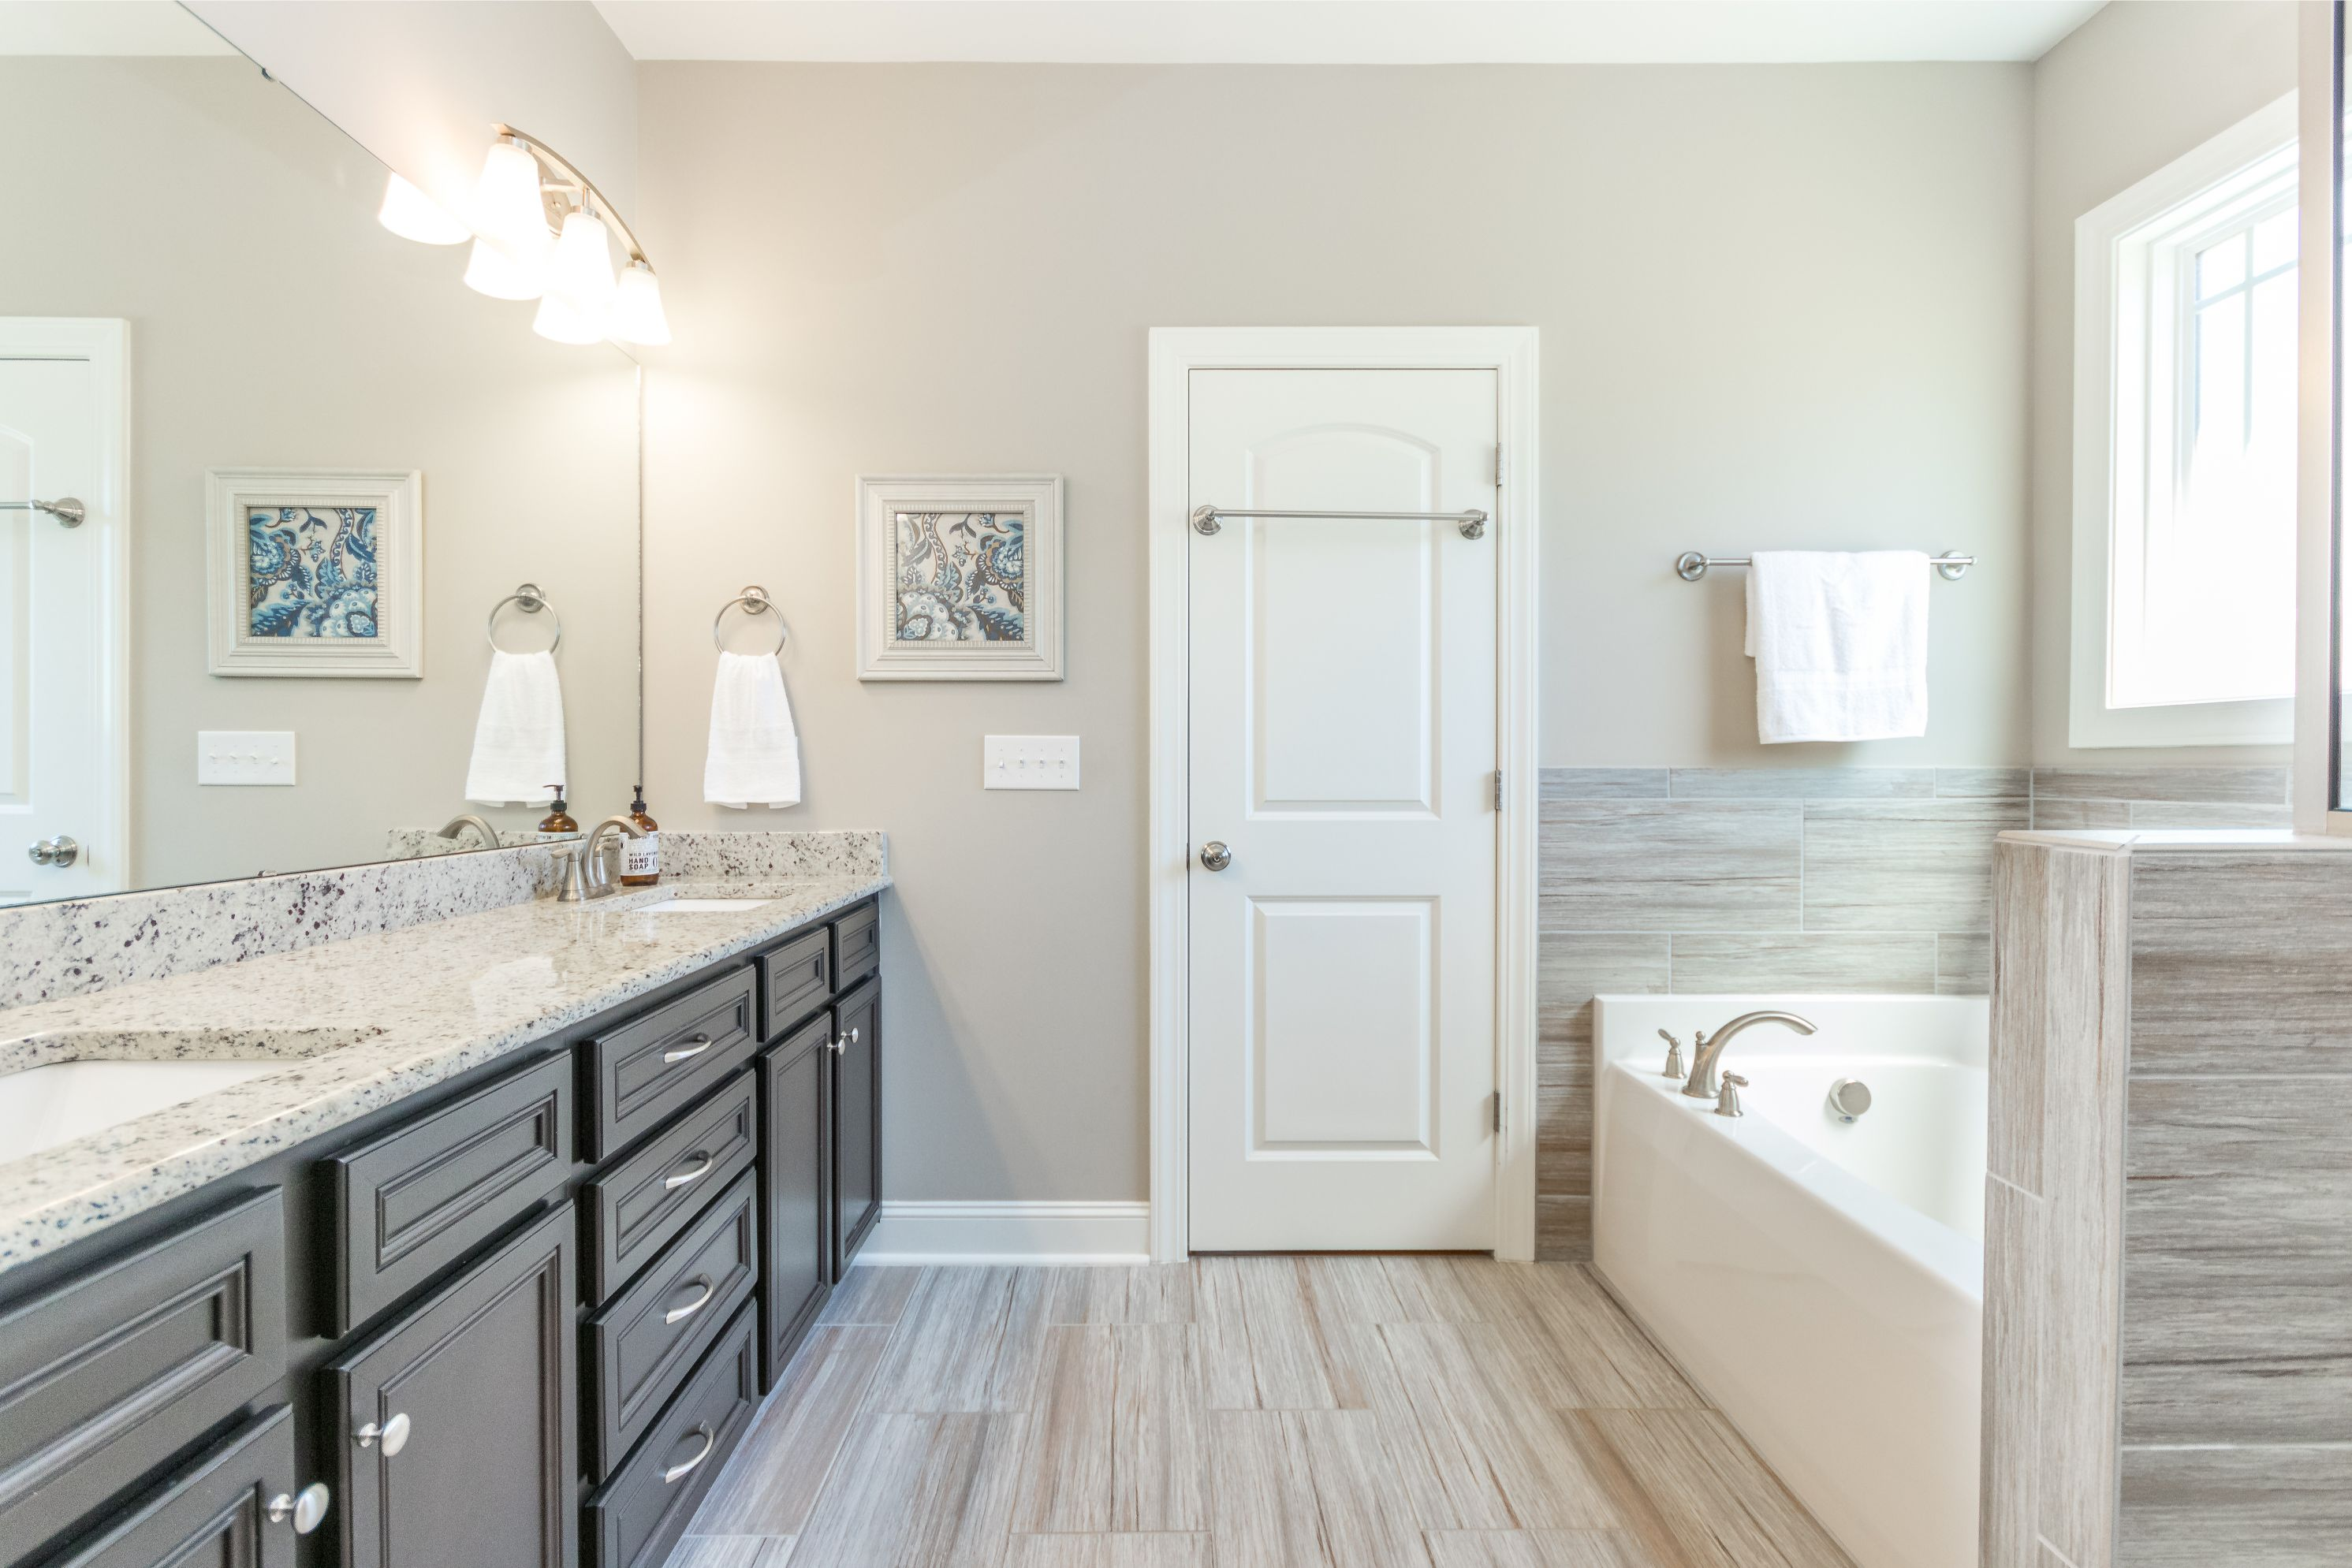 Granite bathroom countertop, gray neutral tub backsplash and flooring